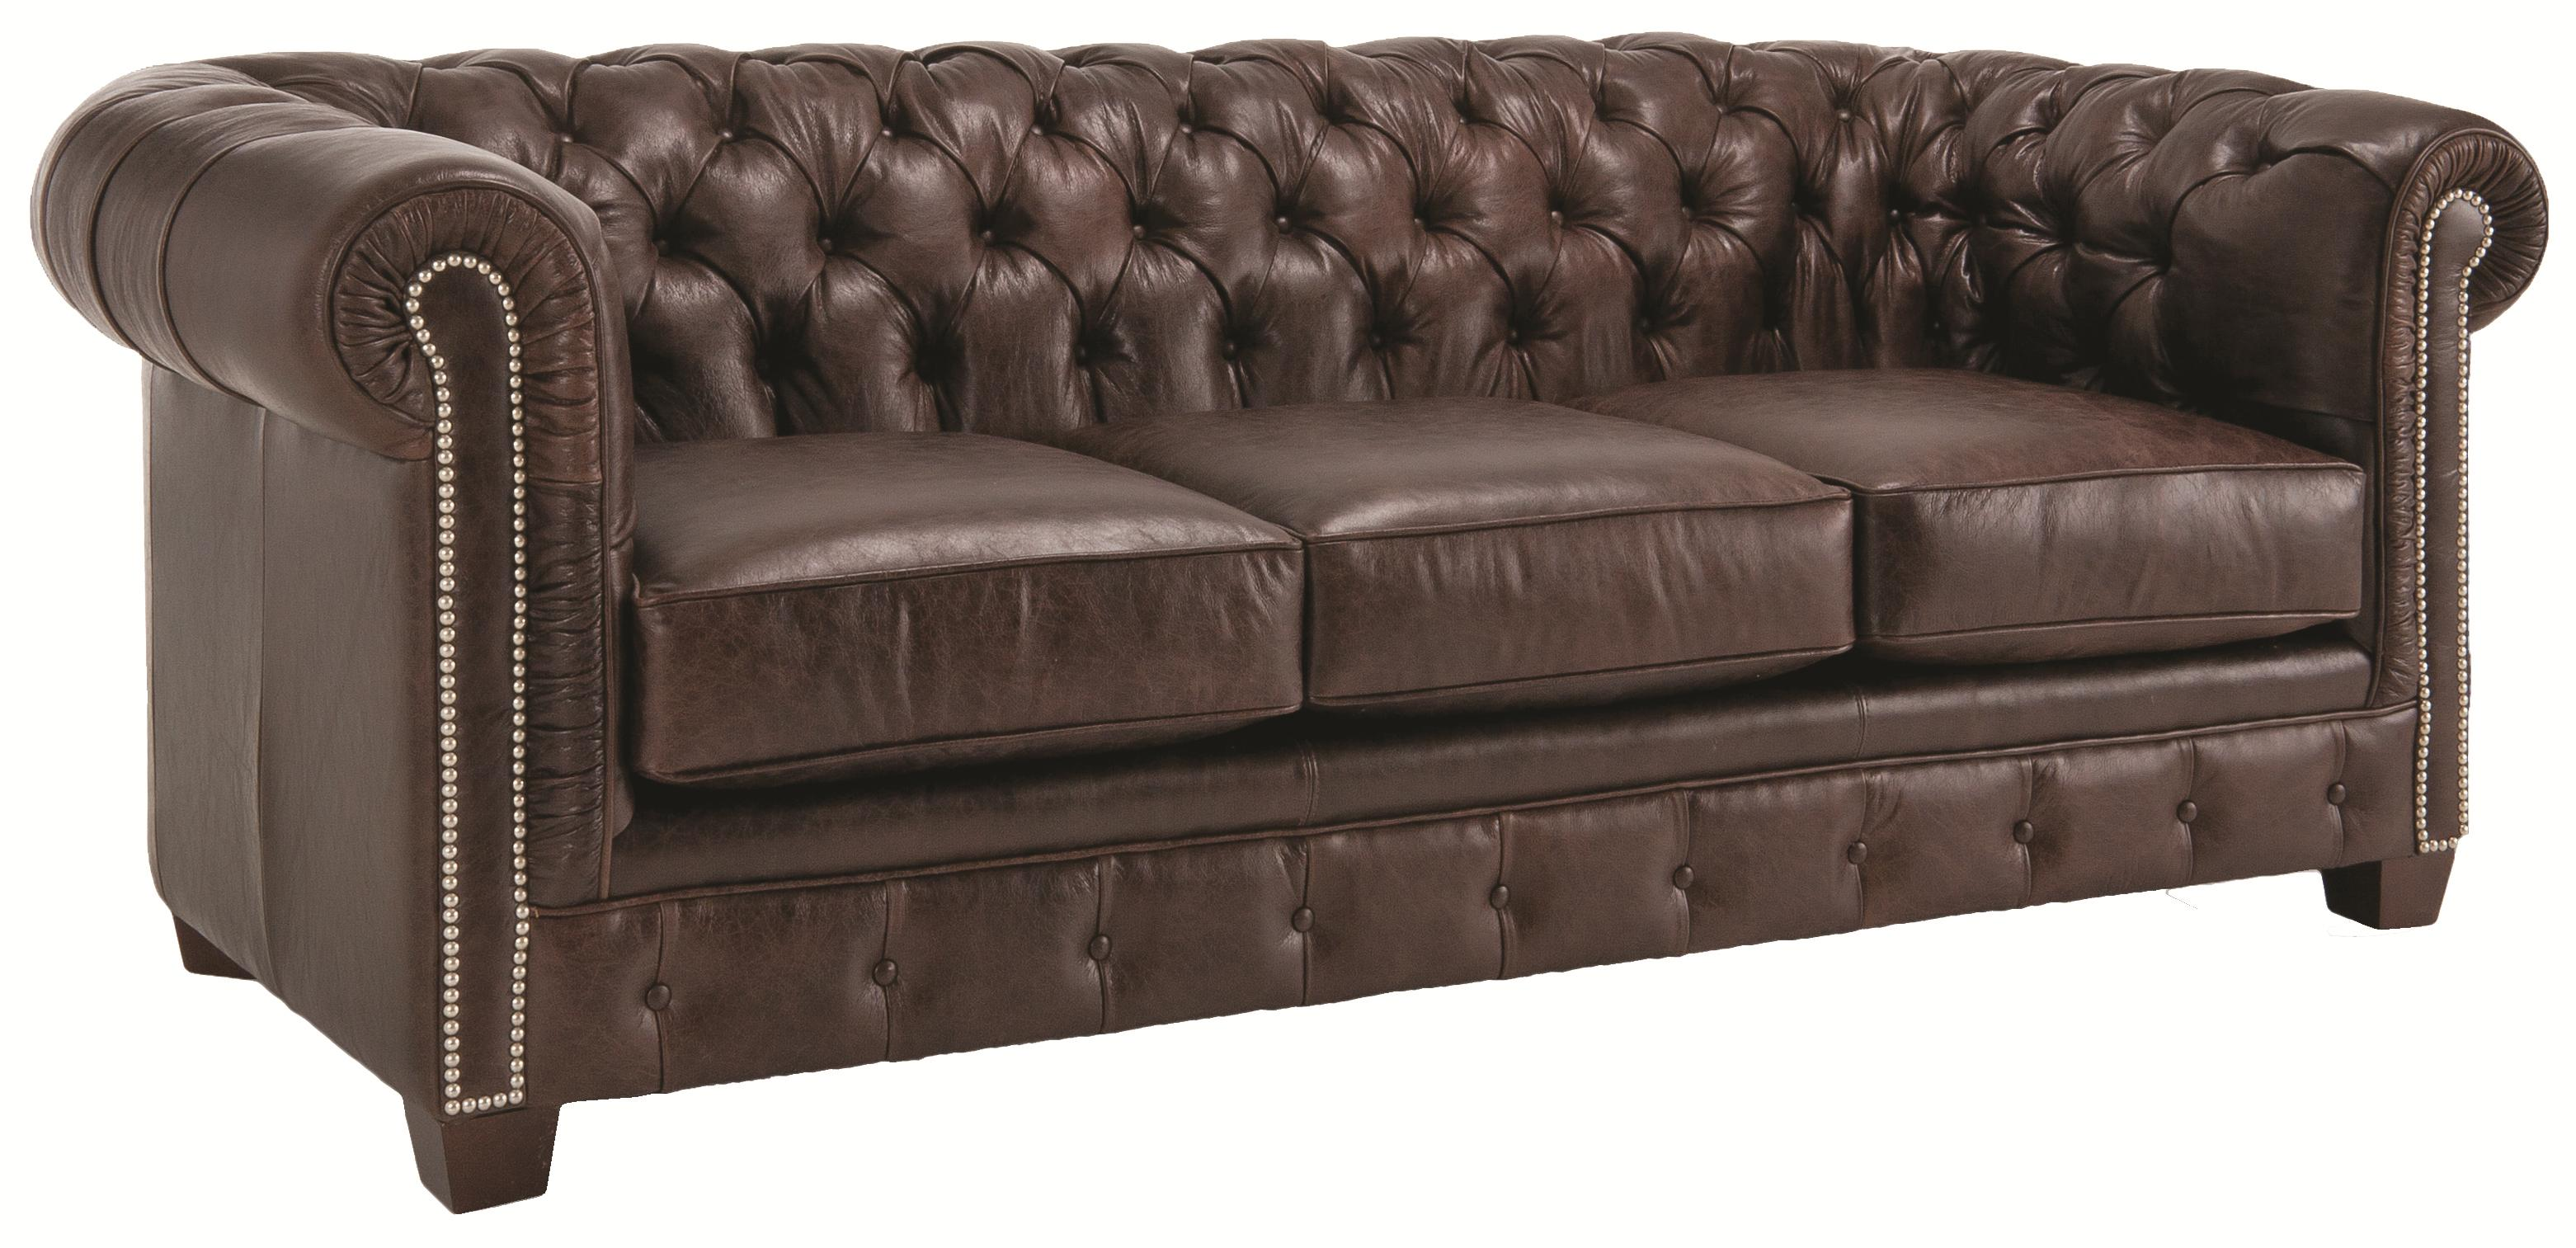 3230  Sofa by Decor-Rest at Upper Room Home Furnishings